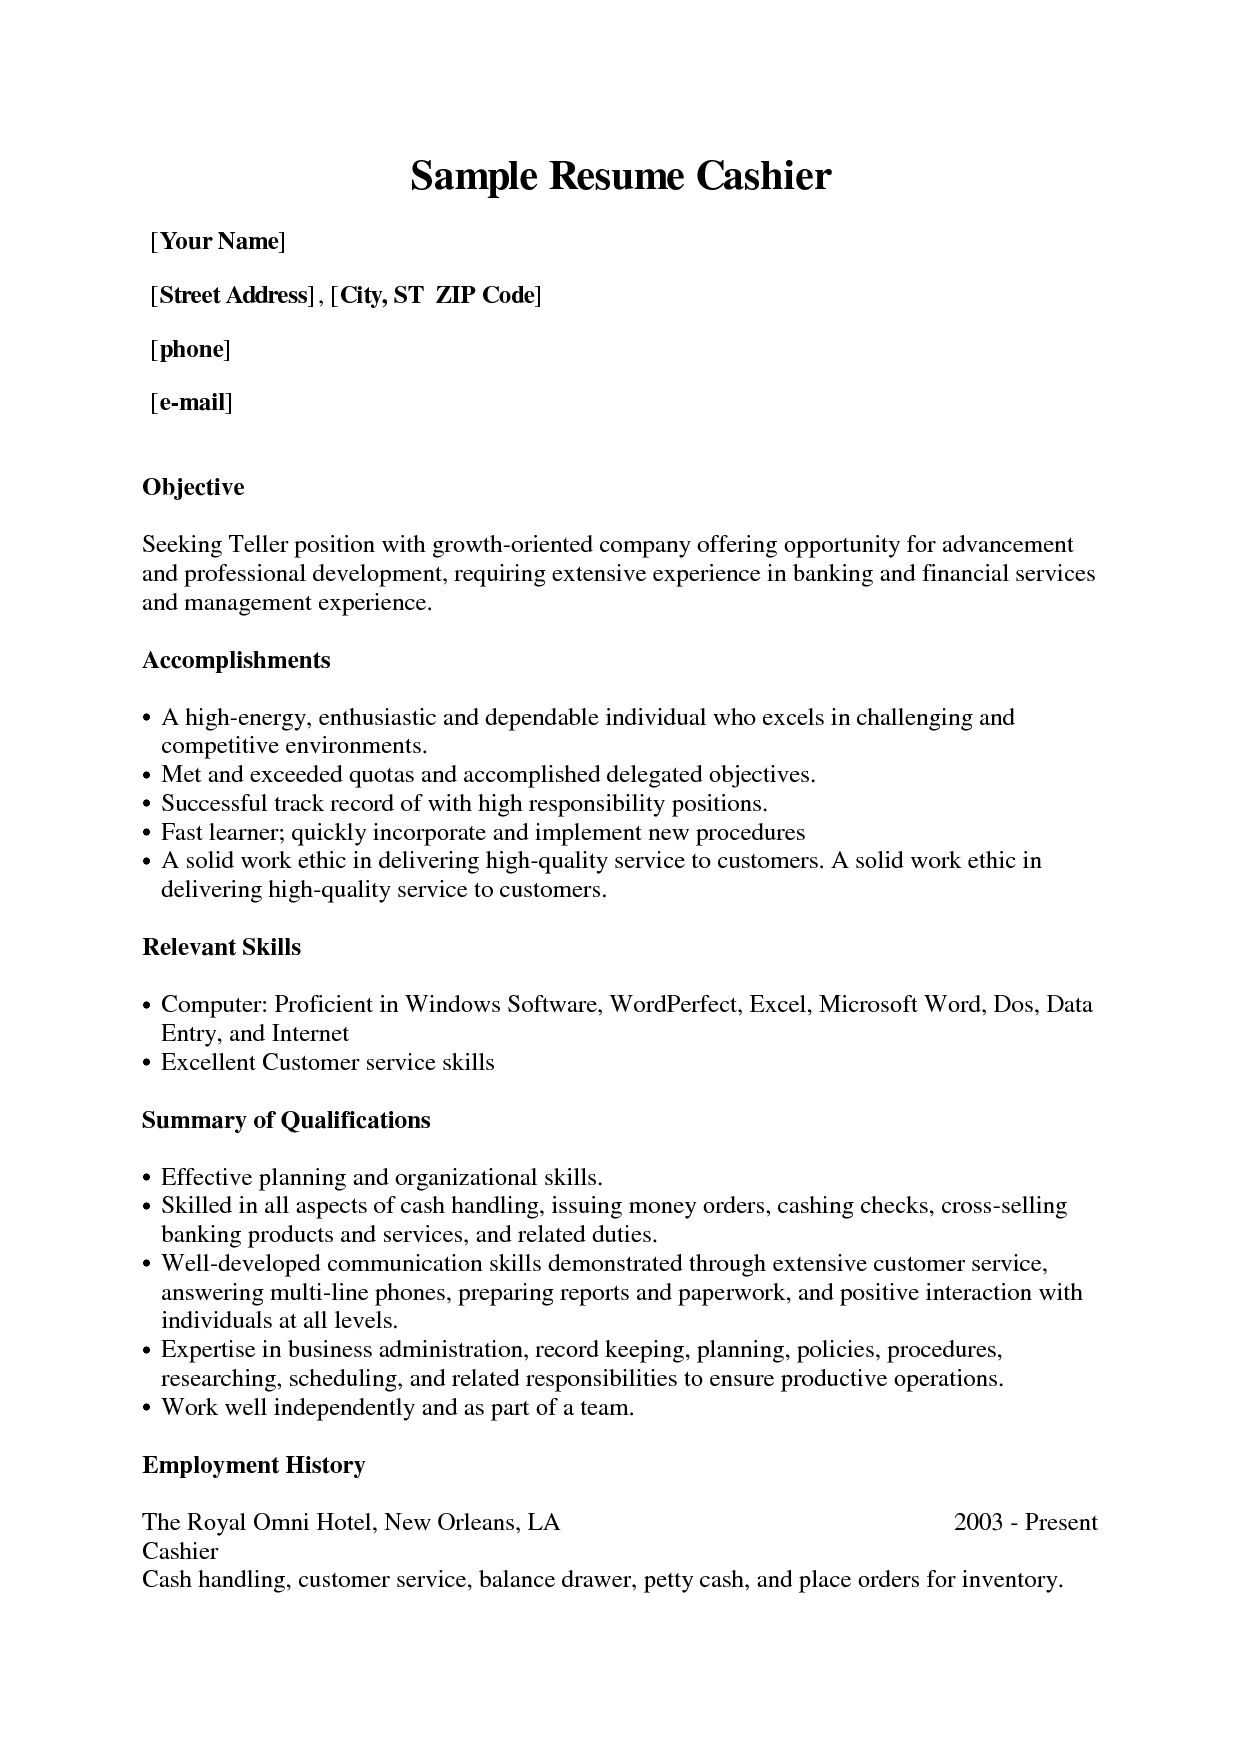 Gallery Resume Job Cashier Example Good Chef Examples More With